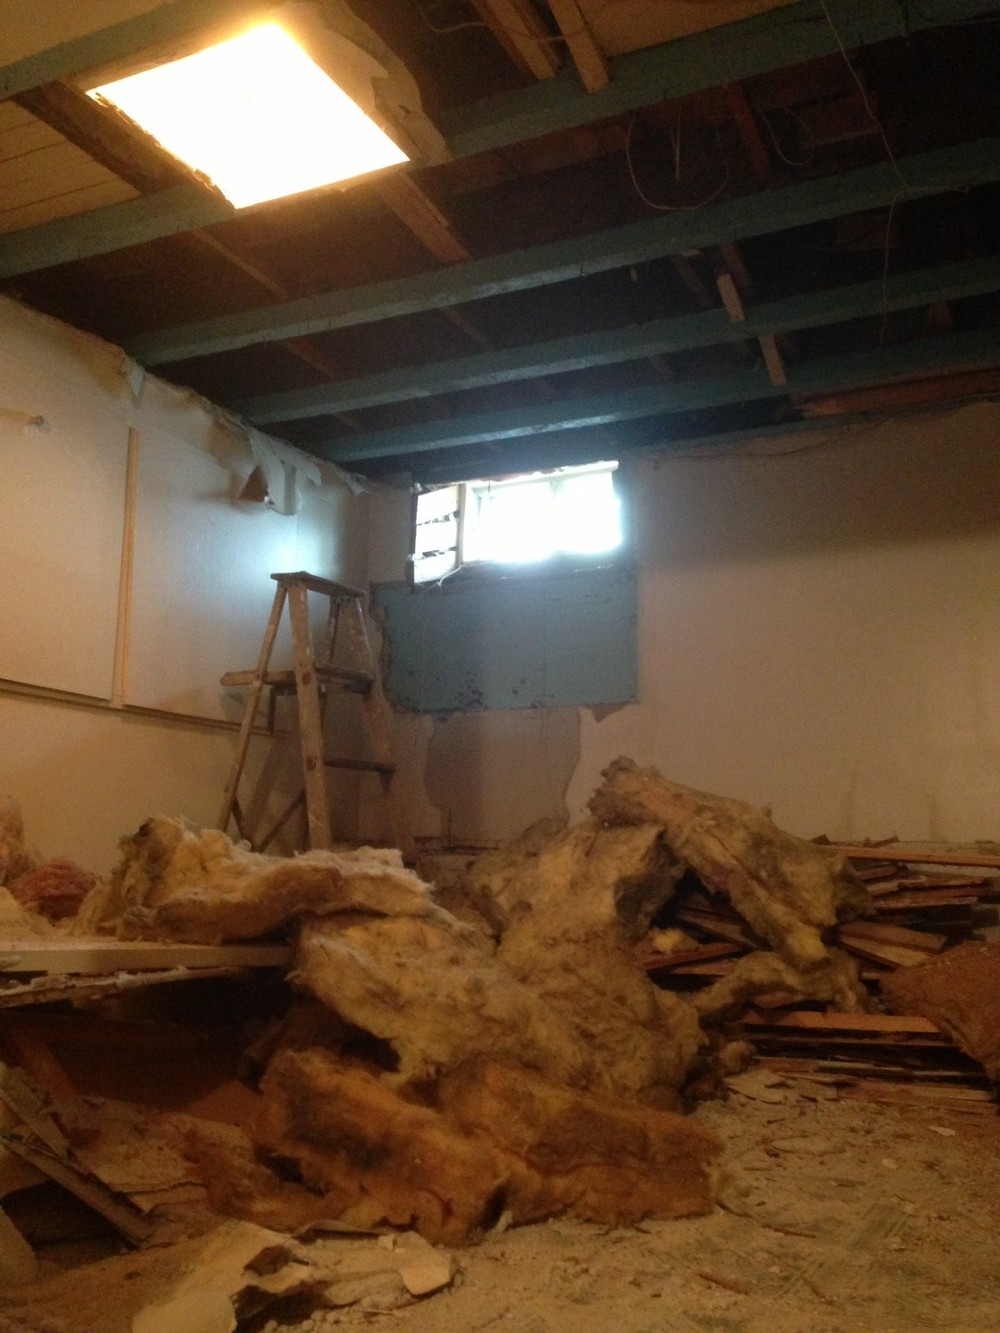 Exposing basement wood beams